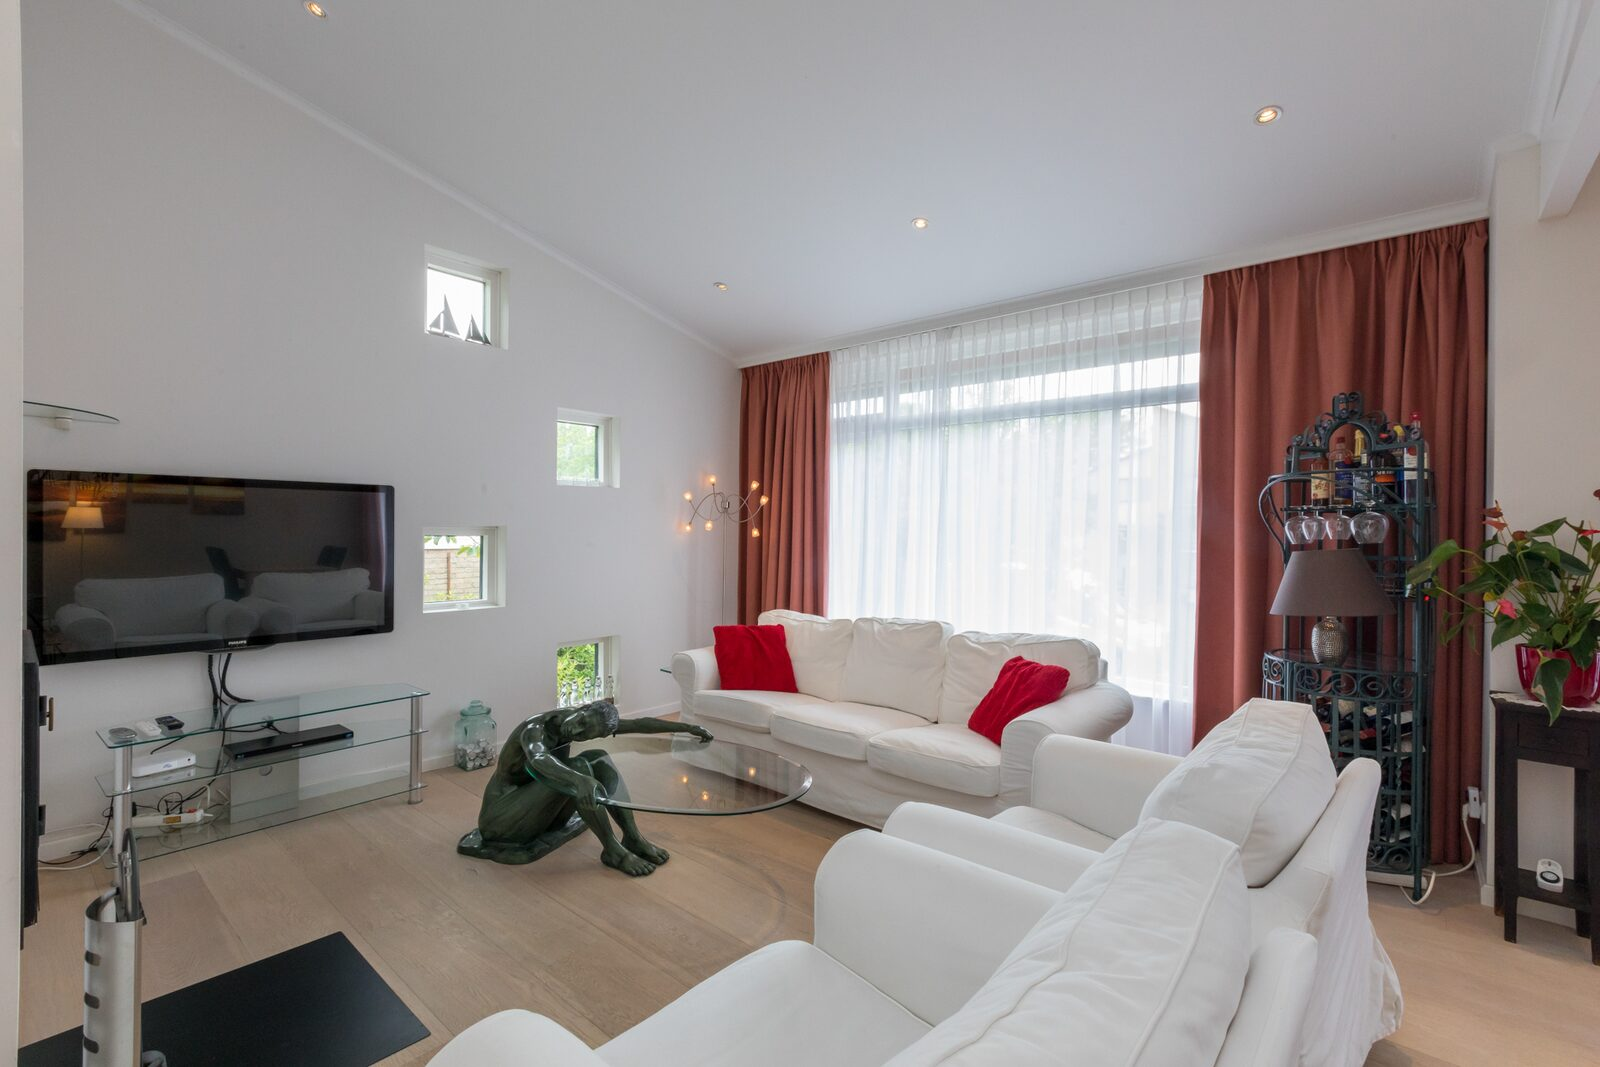 Holidayhouse - Beethovenlaan 4 | Vlissingen